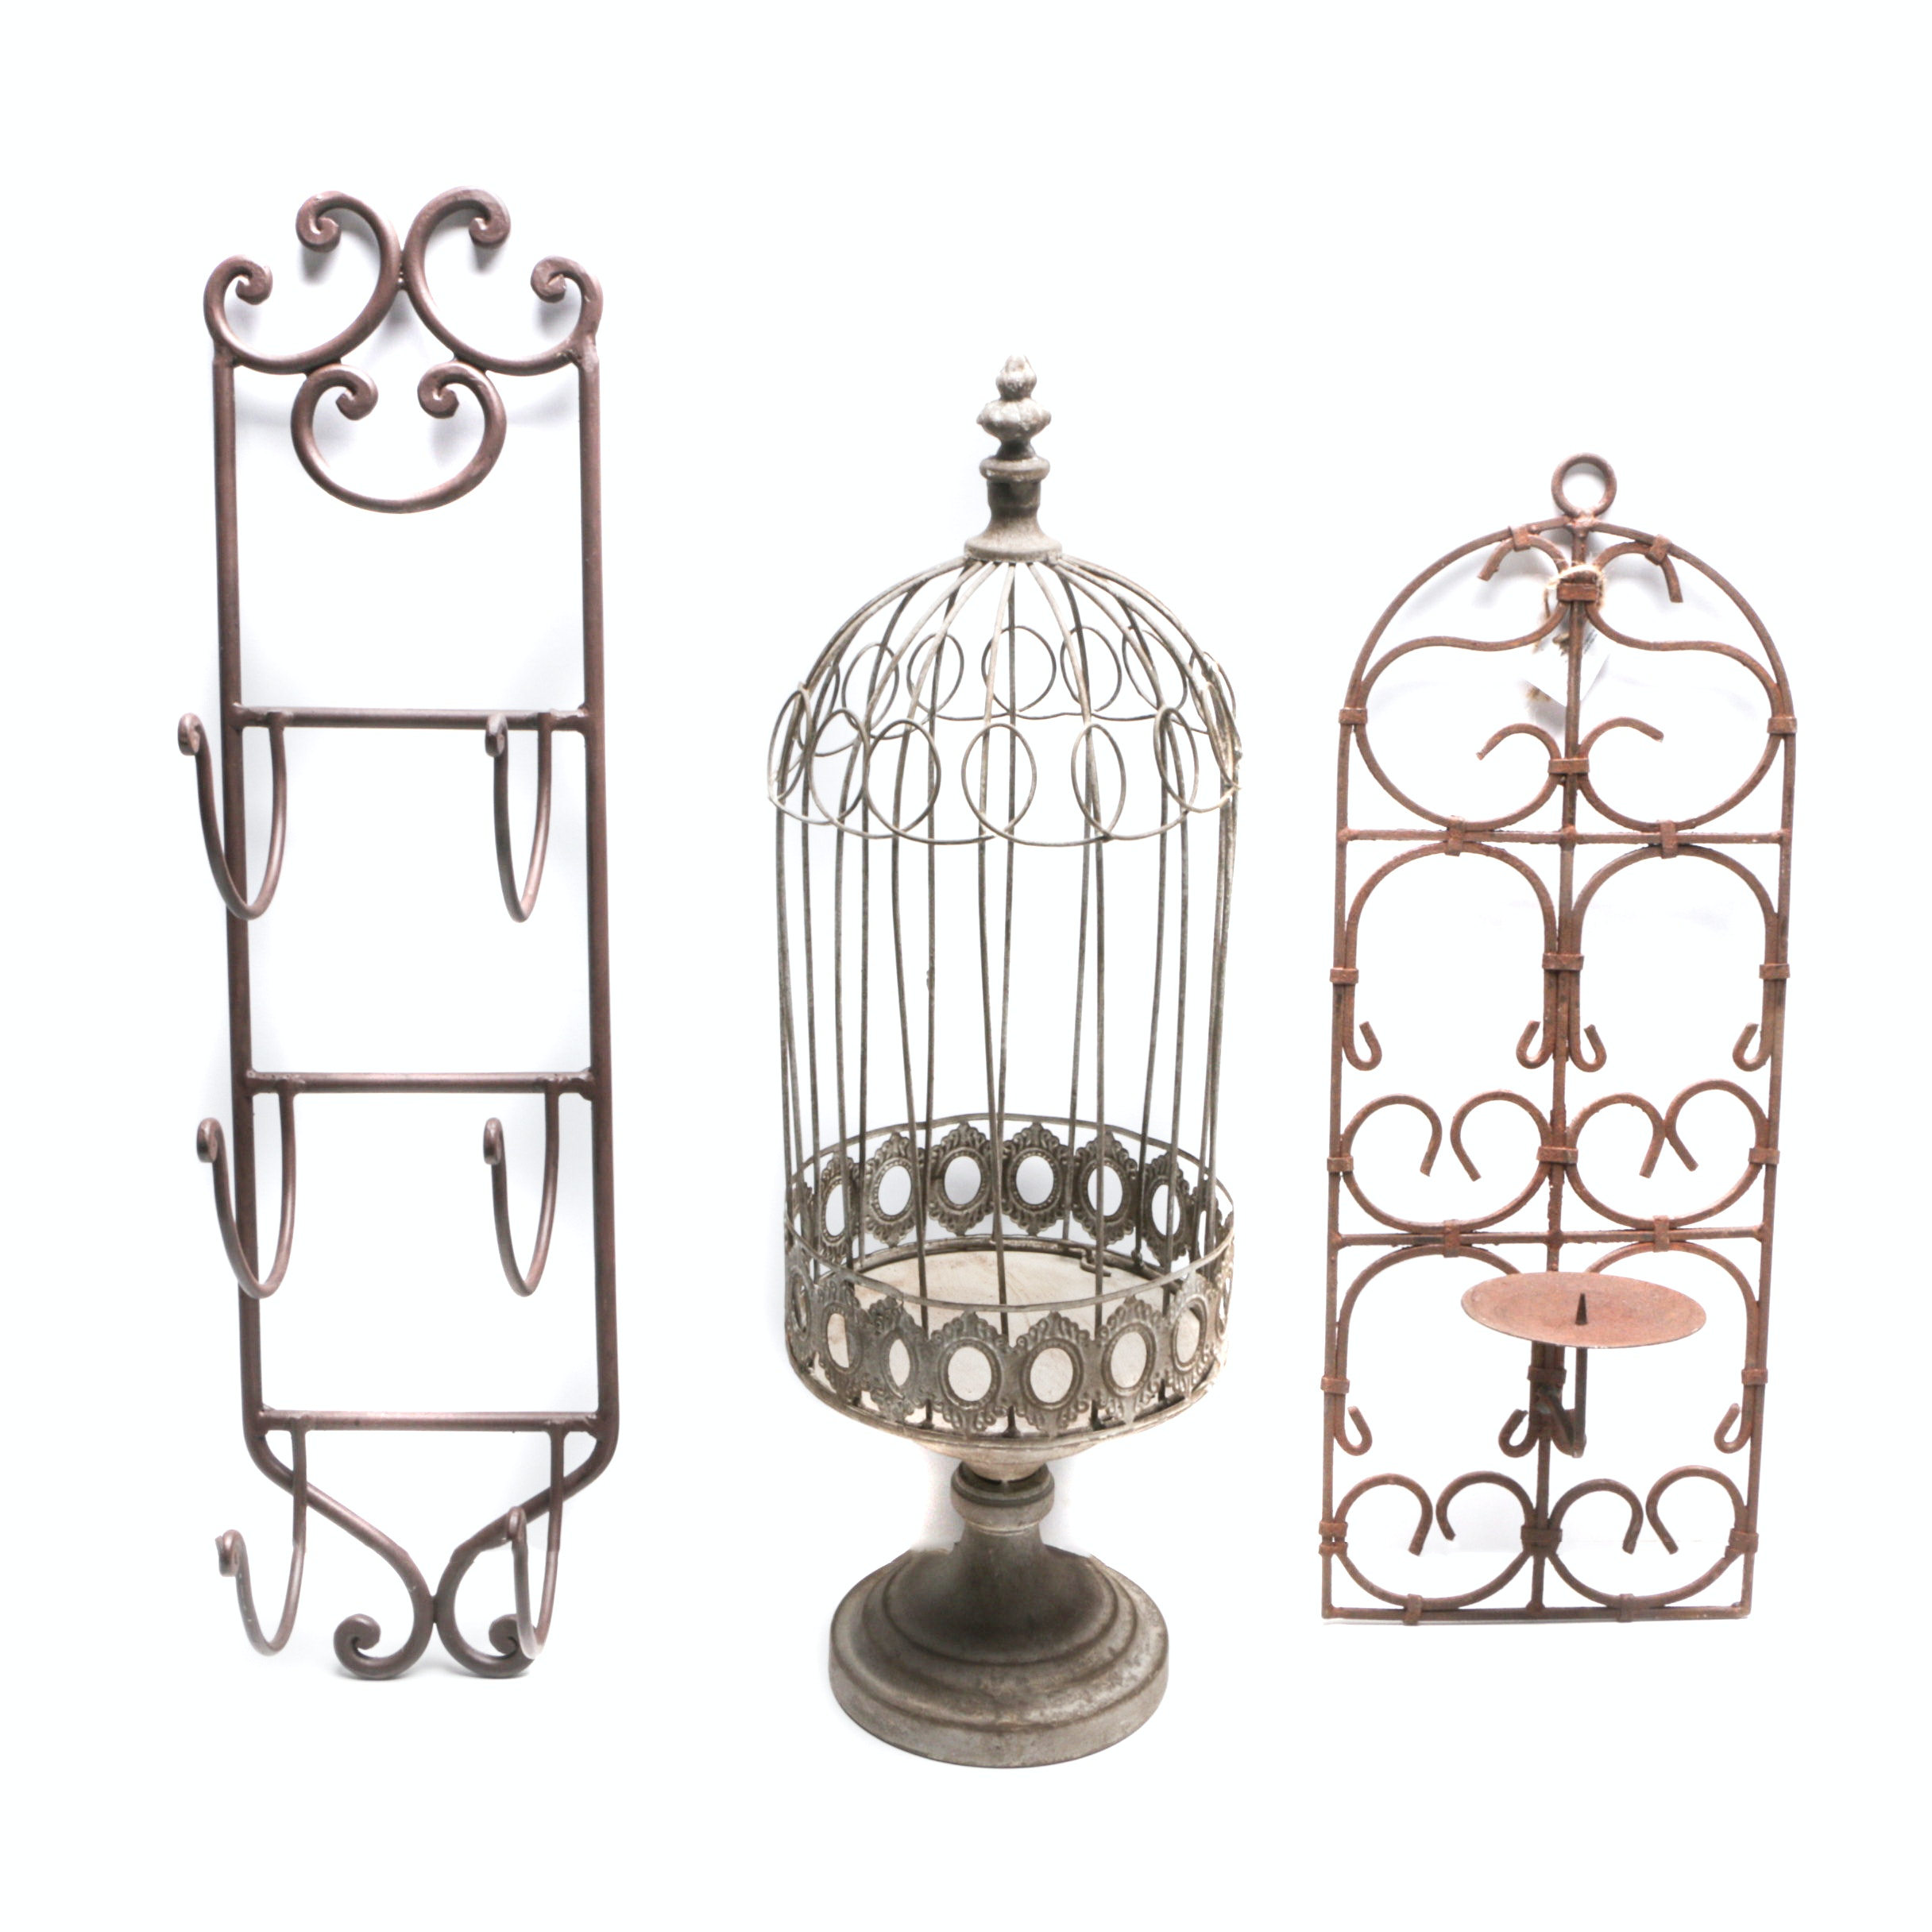 Decorative Metal Rack and  Wall Hangings